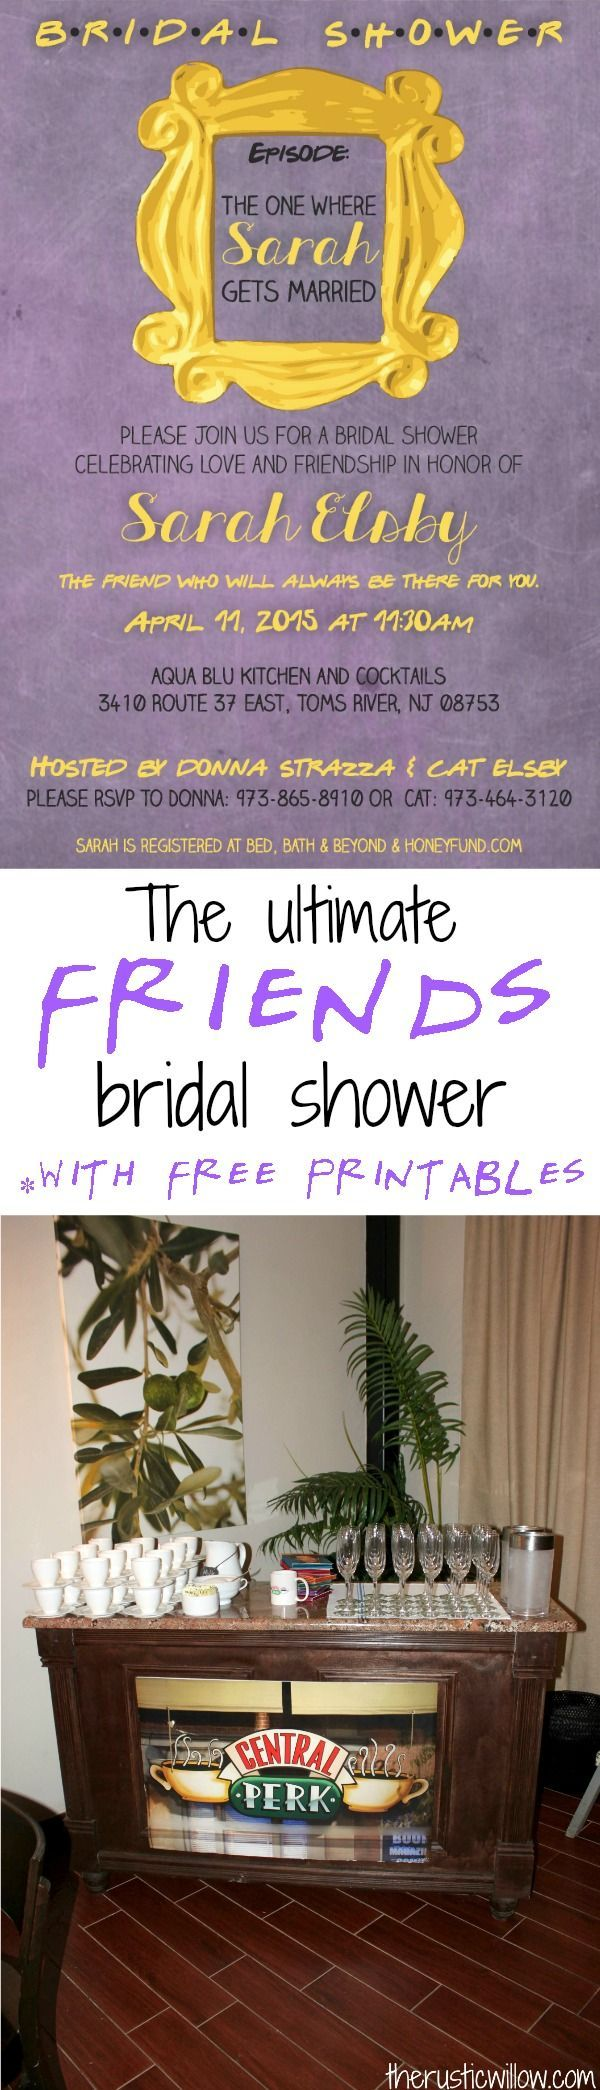 The Ultimate Friends TV Show Bridal Shower